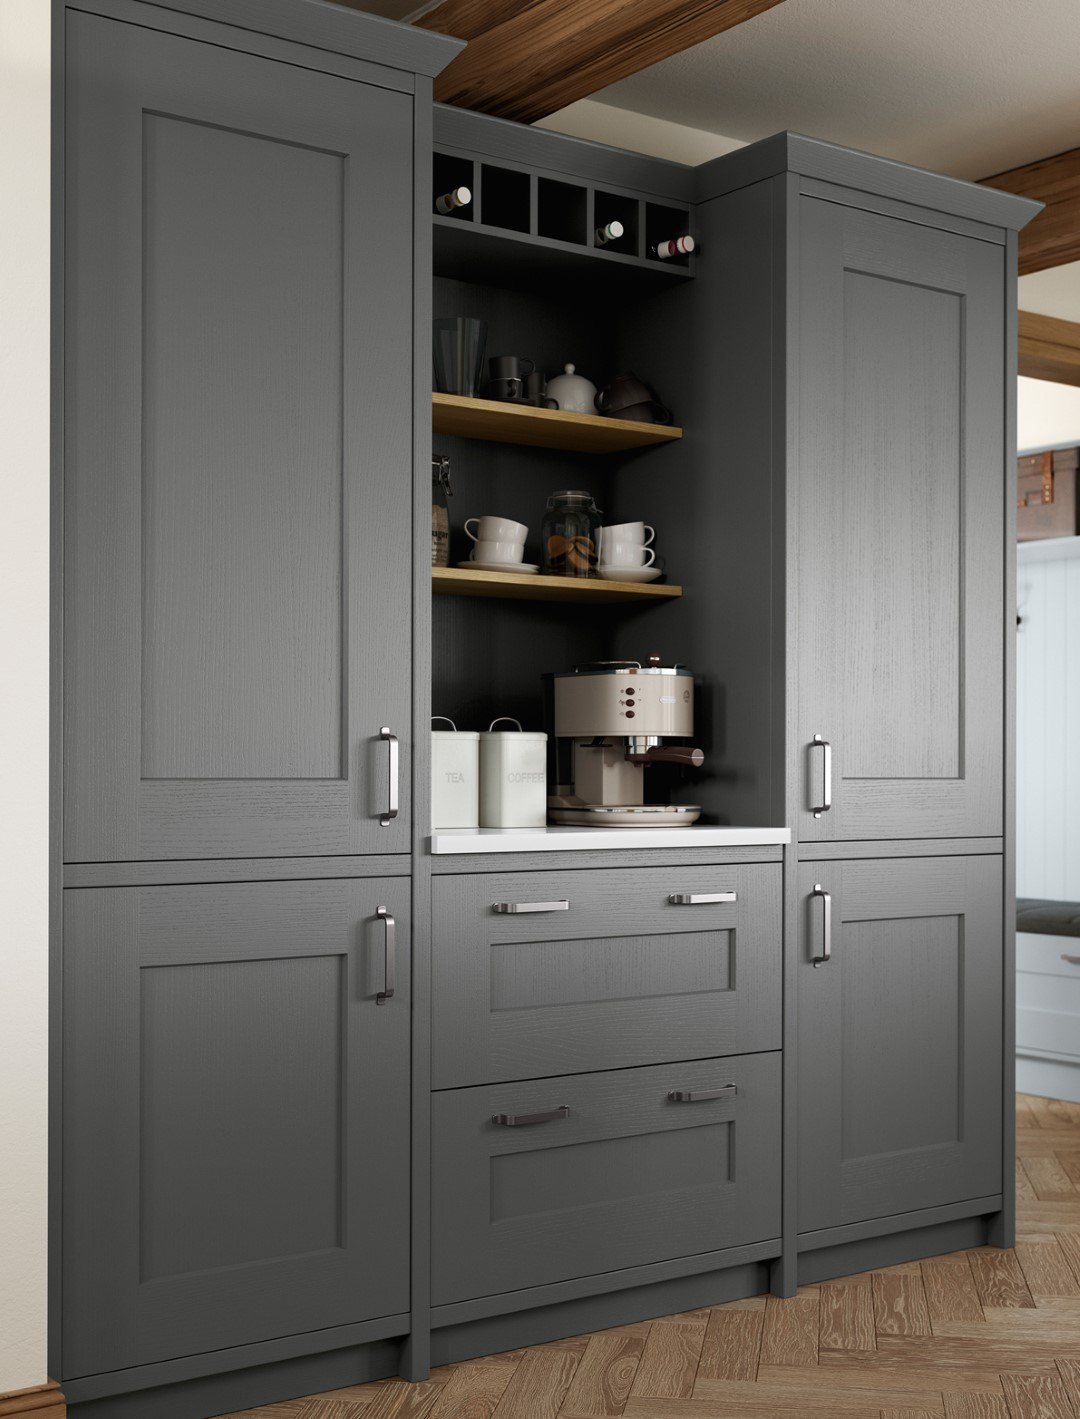 Modern Kitchen Design Ideas - Alan Kelly Kitchens Waterford